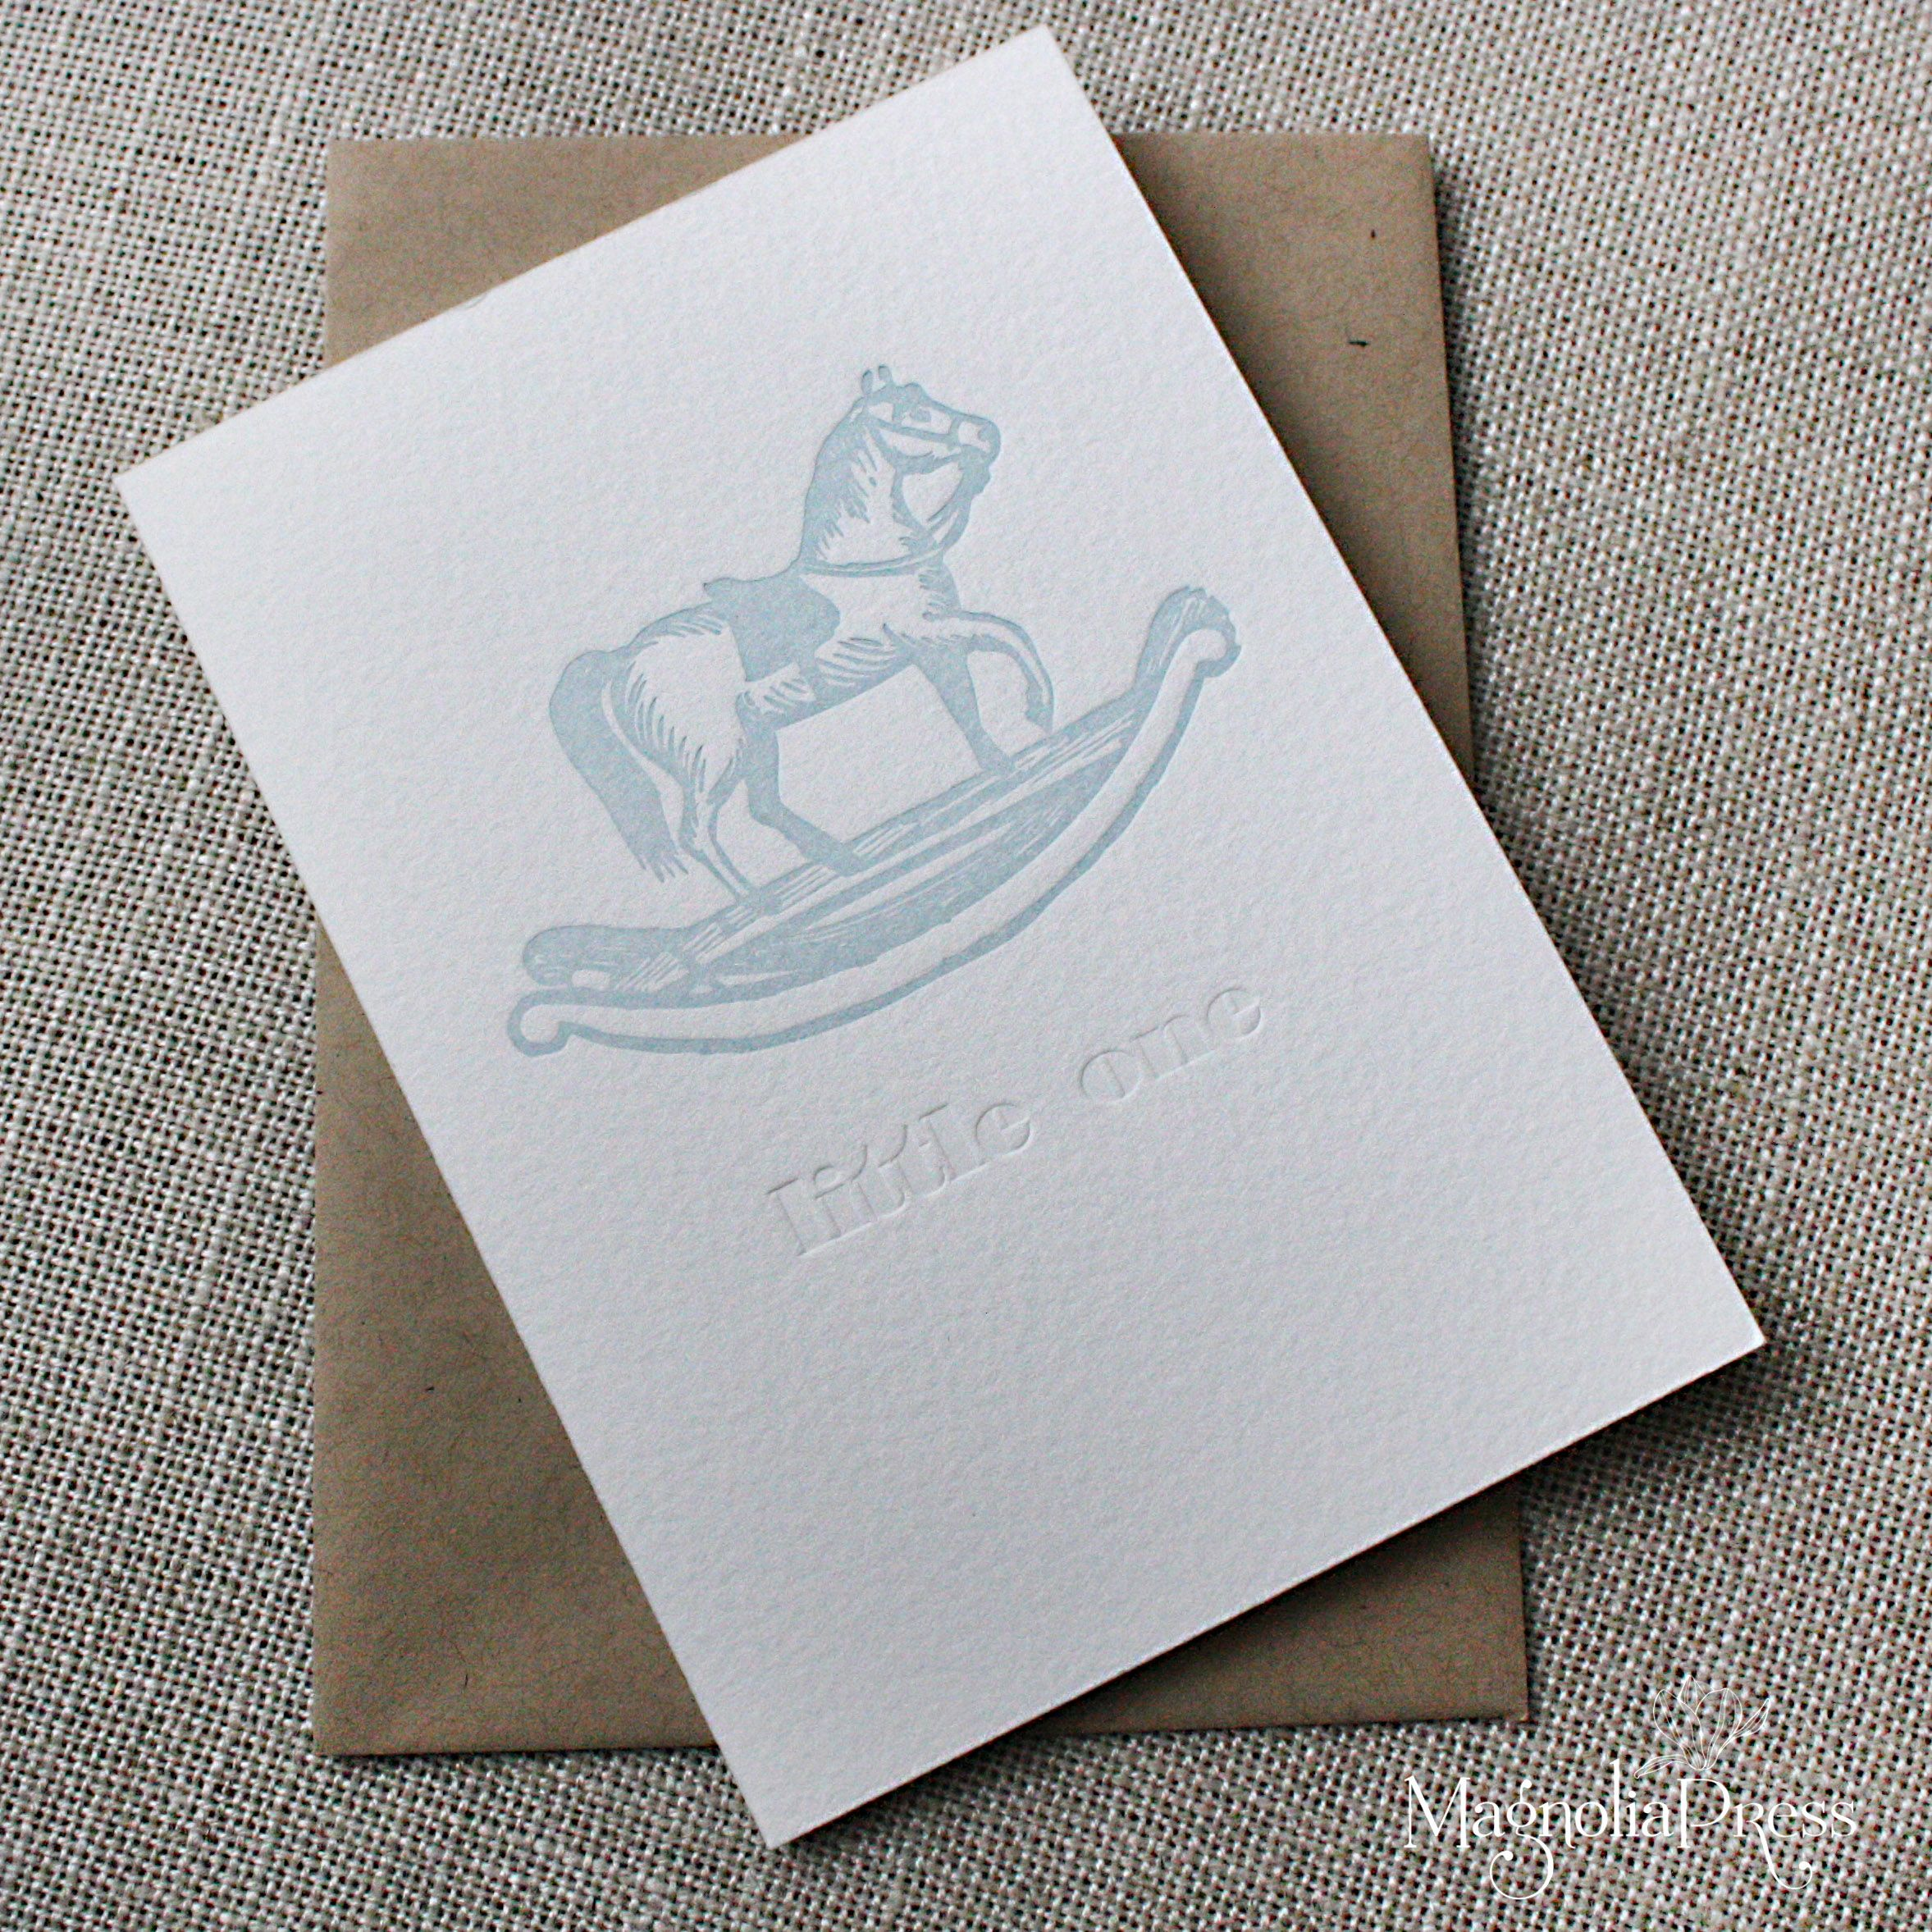 Rocking horse letterpress greeting card cards pinterest rocking horse letterpress greeting card m4hsunfo